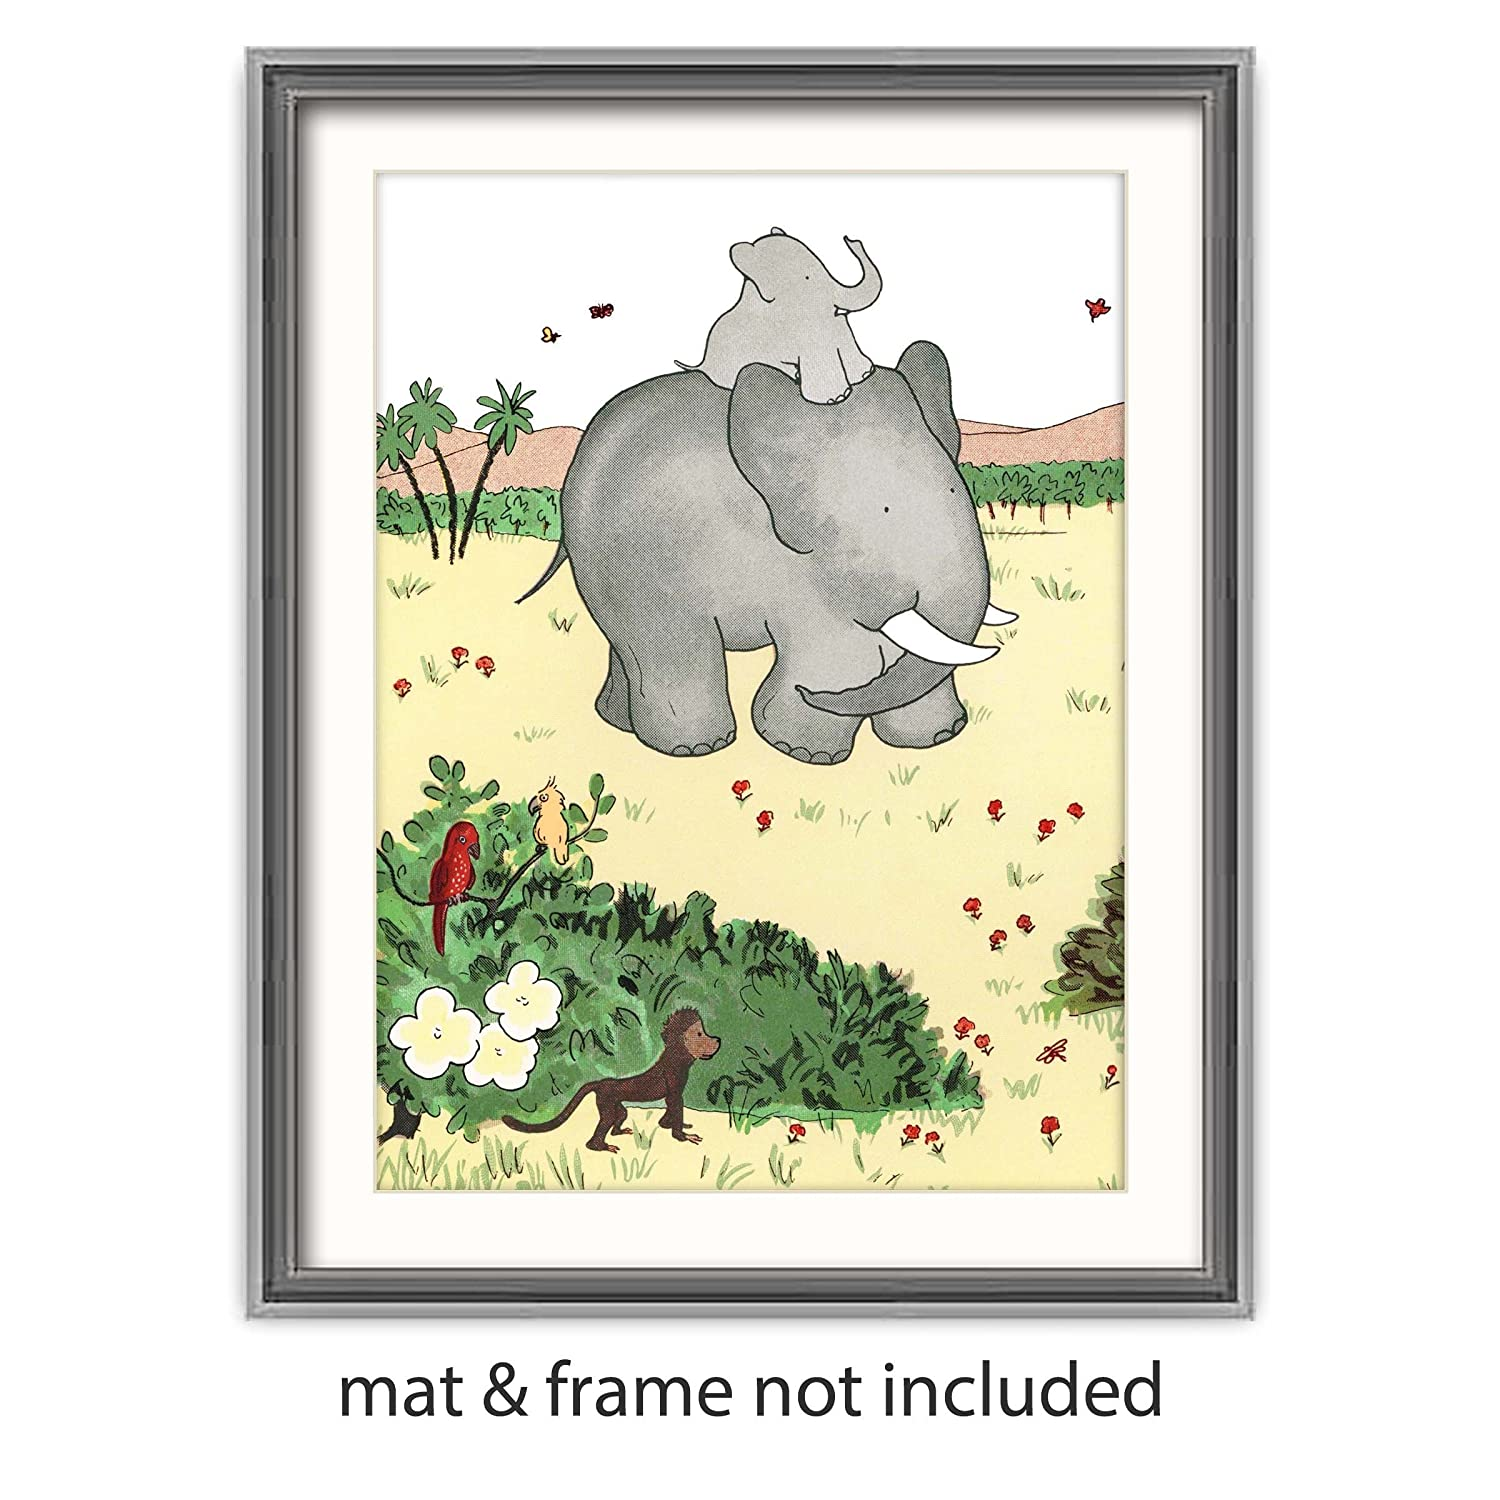 Amazon.com: Babar the Elephant Art (Childrens Wall Decor, Baby ...